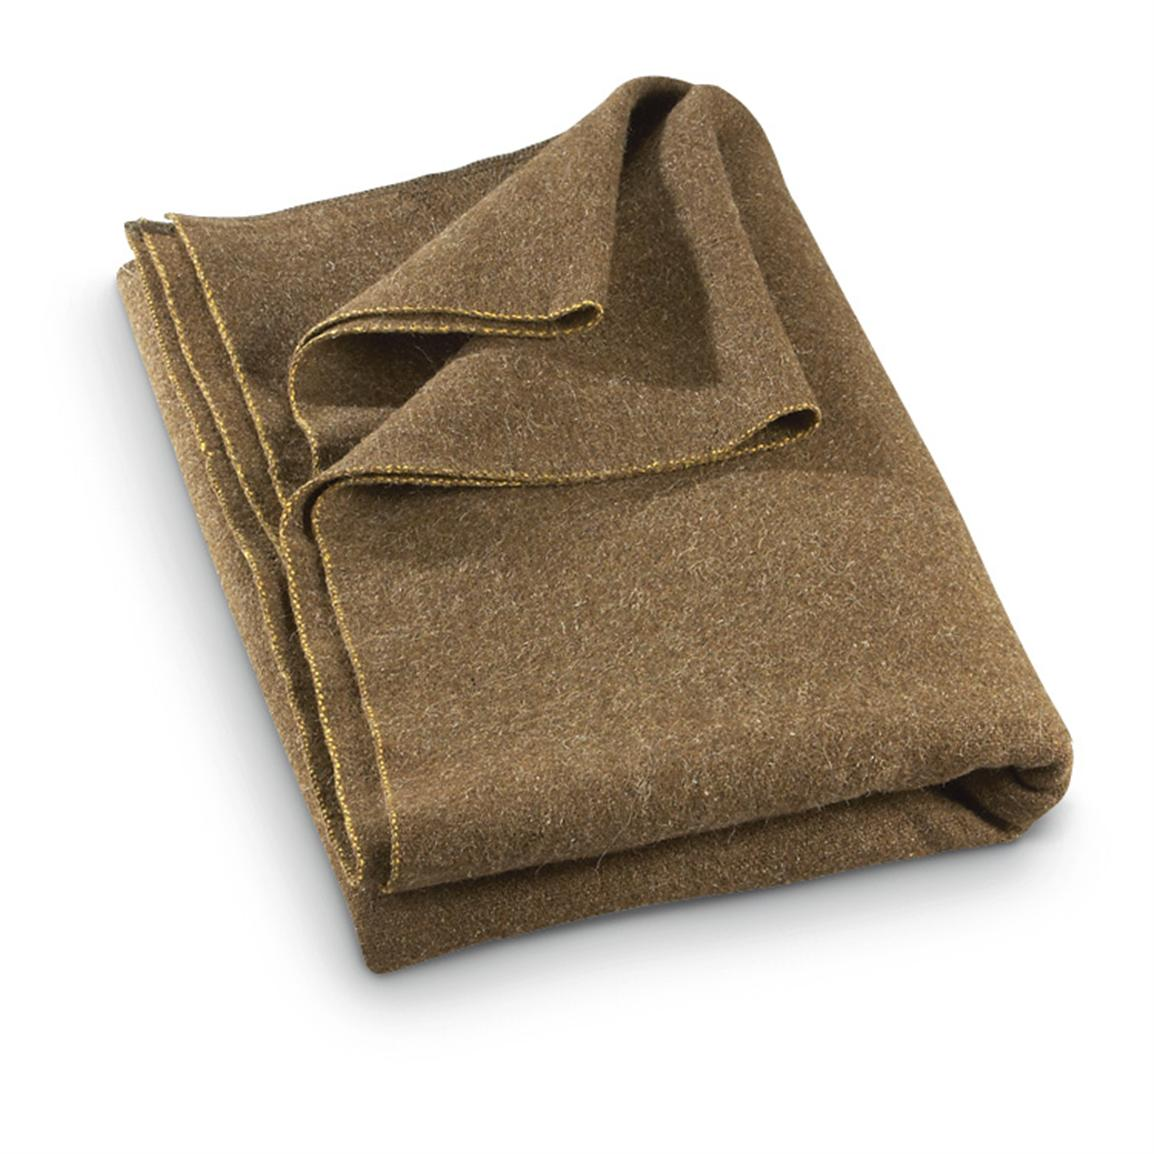 New Czech Military Surplus Wool Blanket, Olive Drab